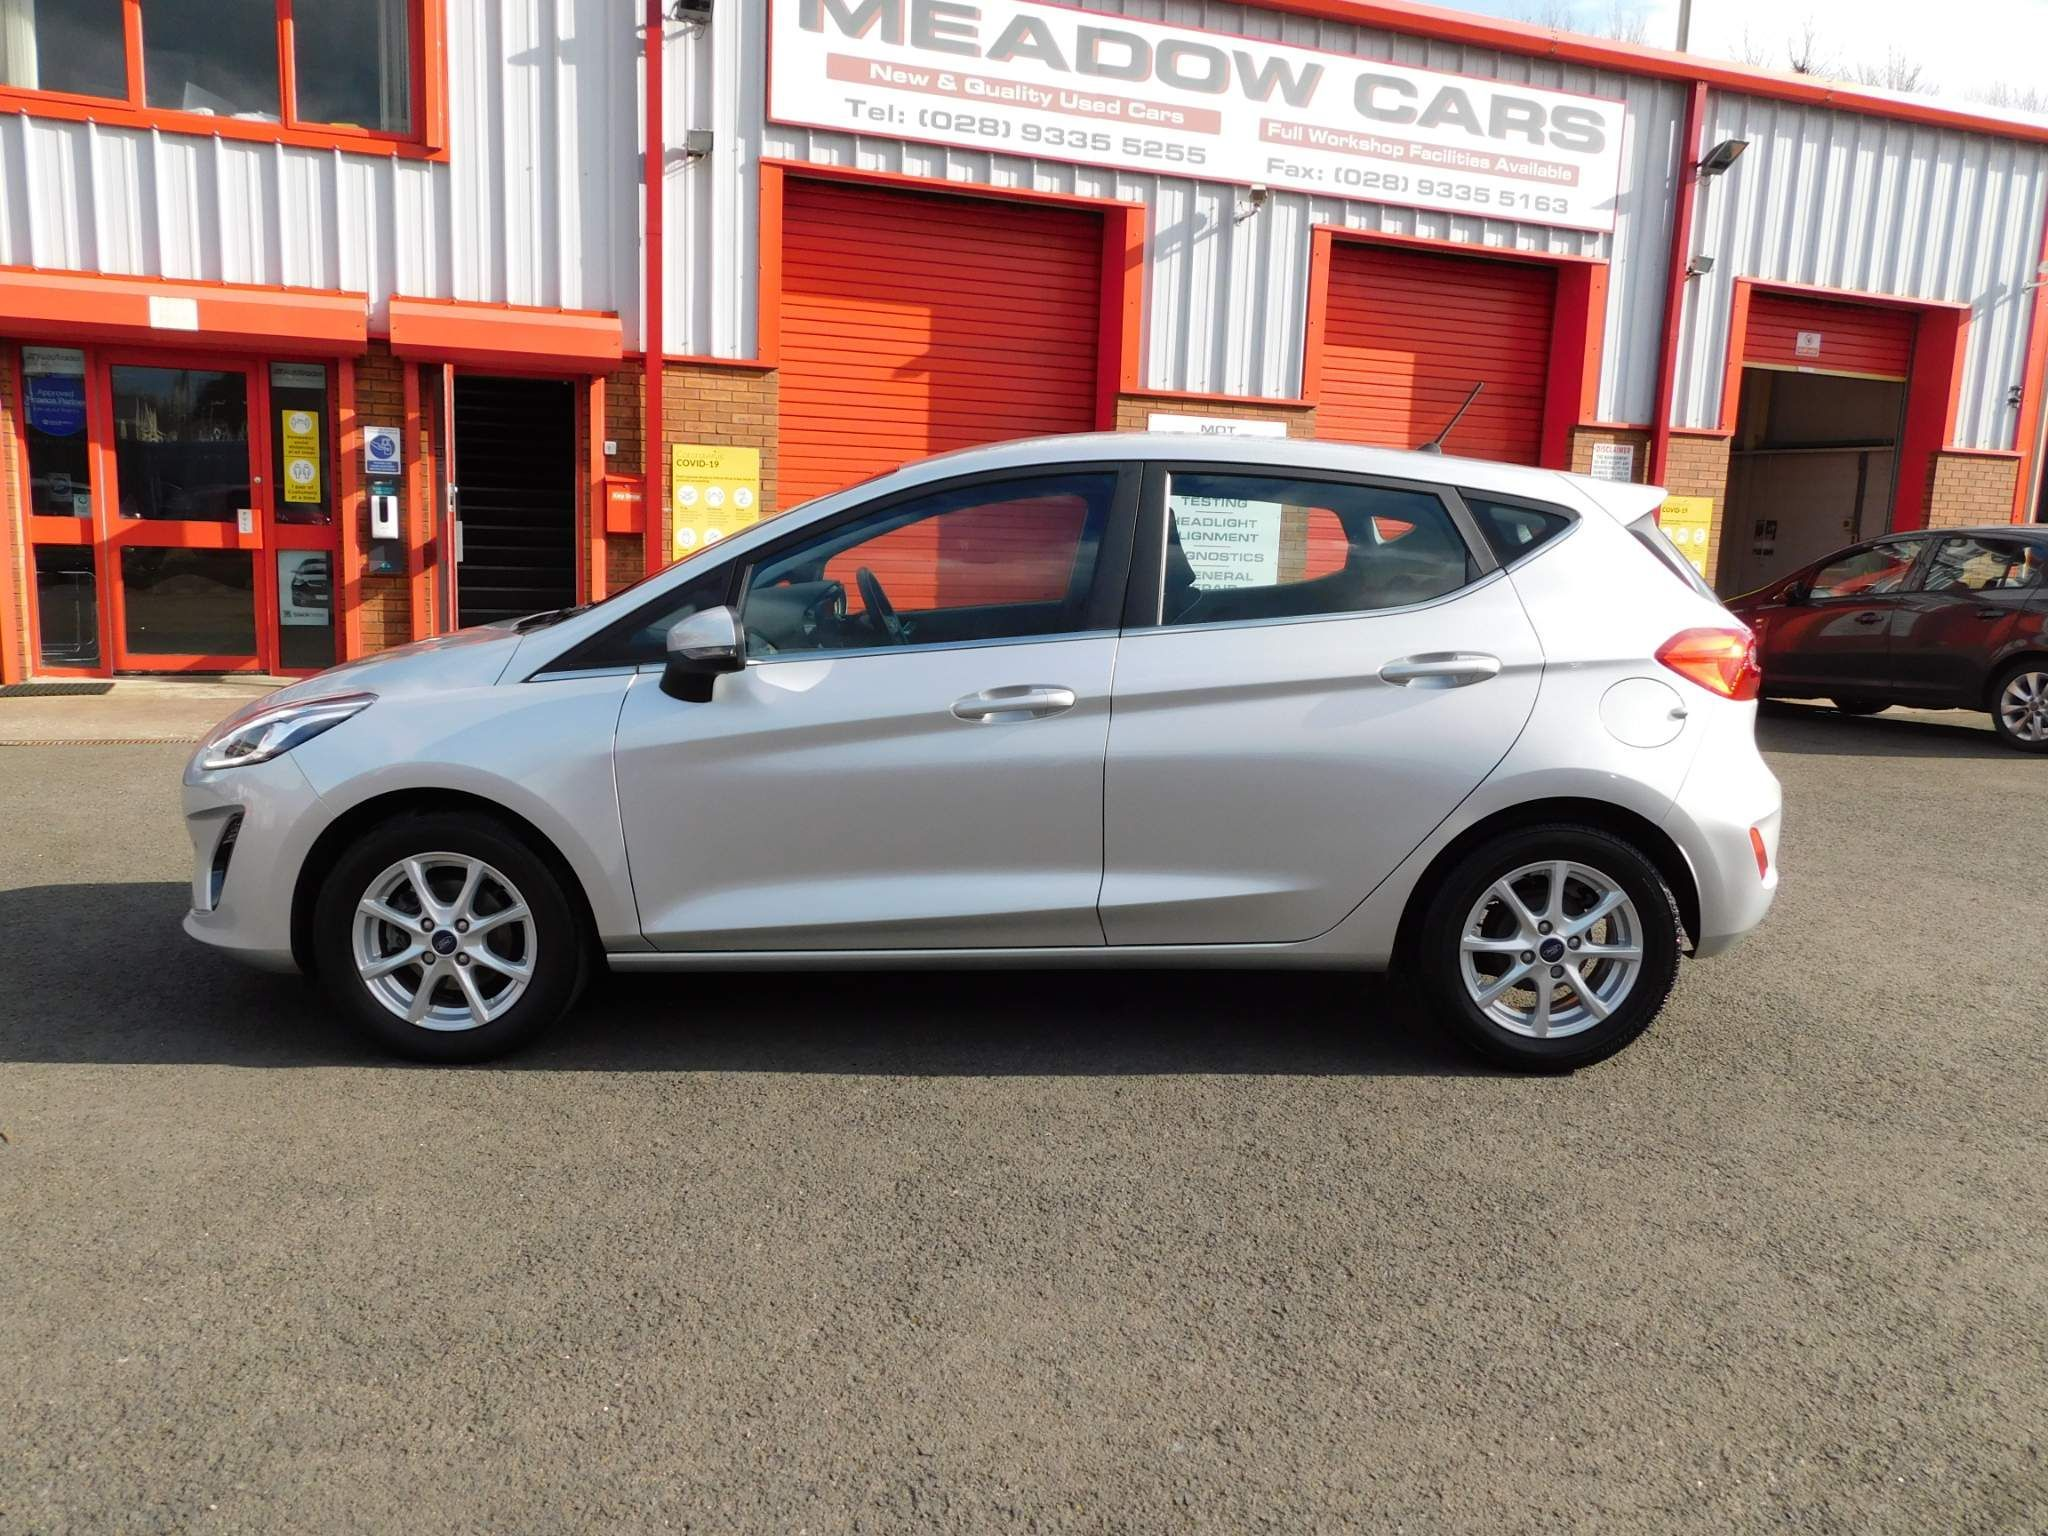 2018 FORD Fiesta 1.0T EcoBoost Zetec (s/s) Petrol Manual just arrived – Meadow Cars Carrickfergus full